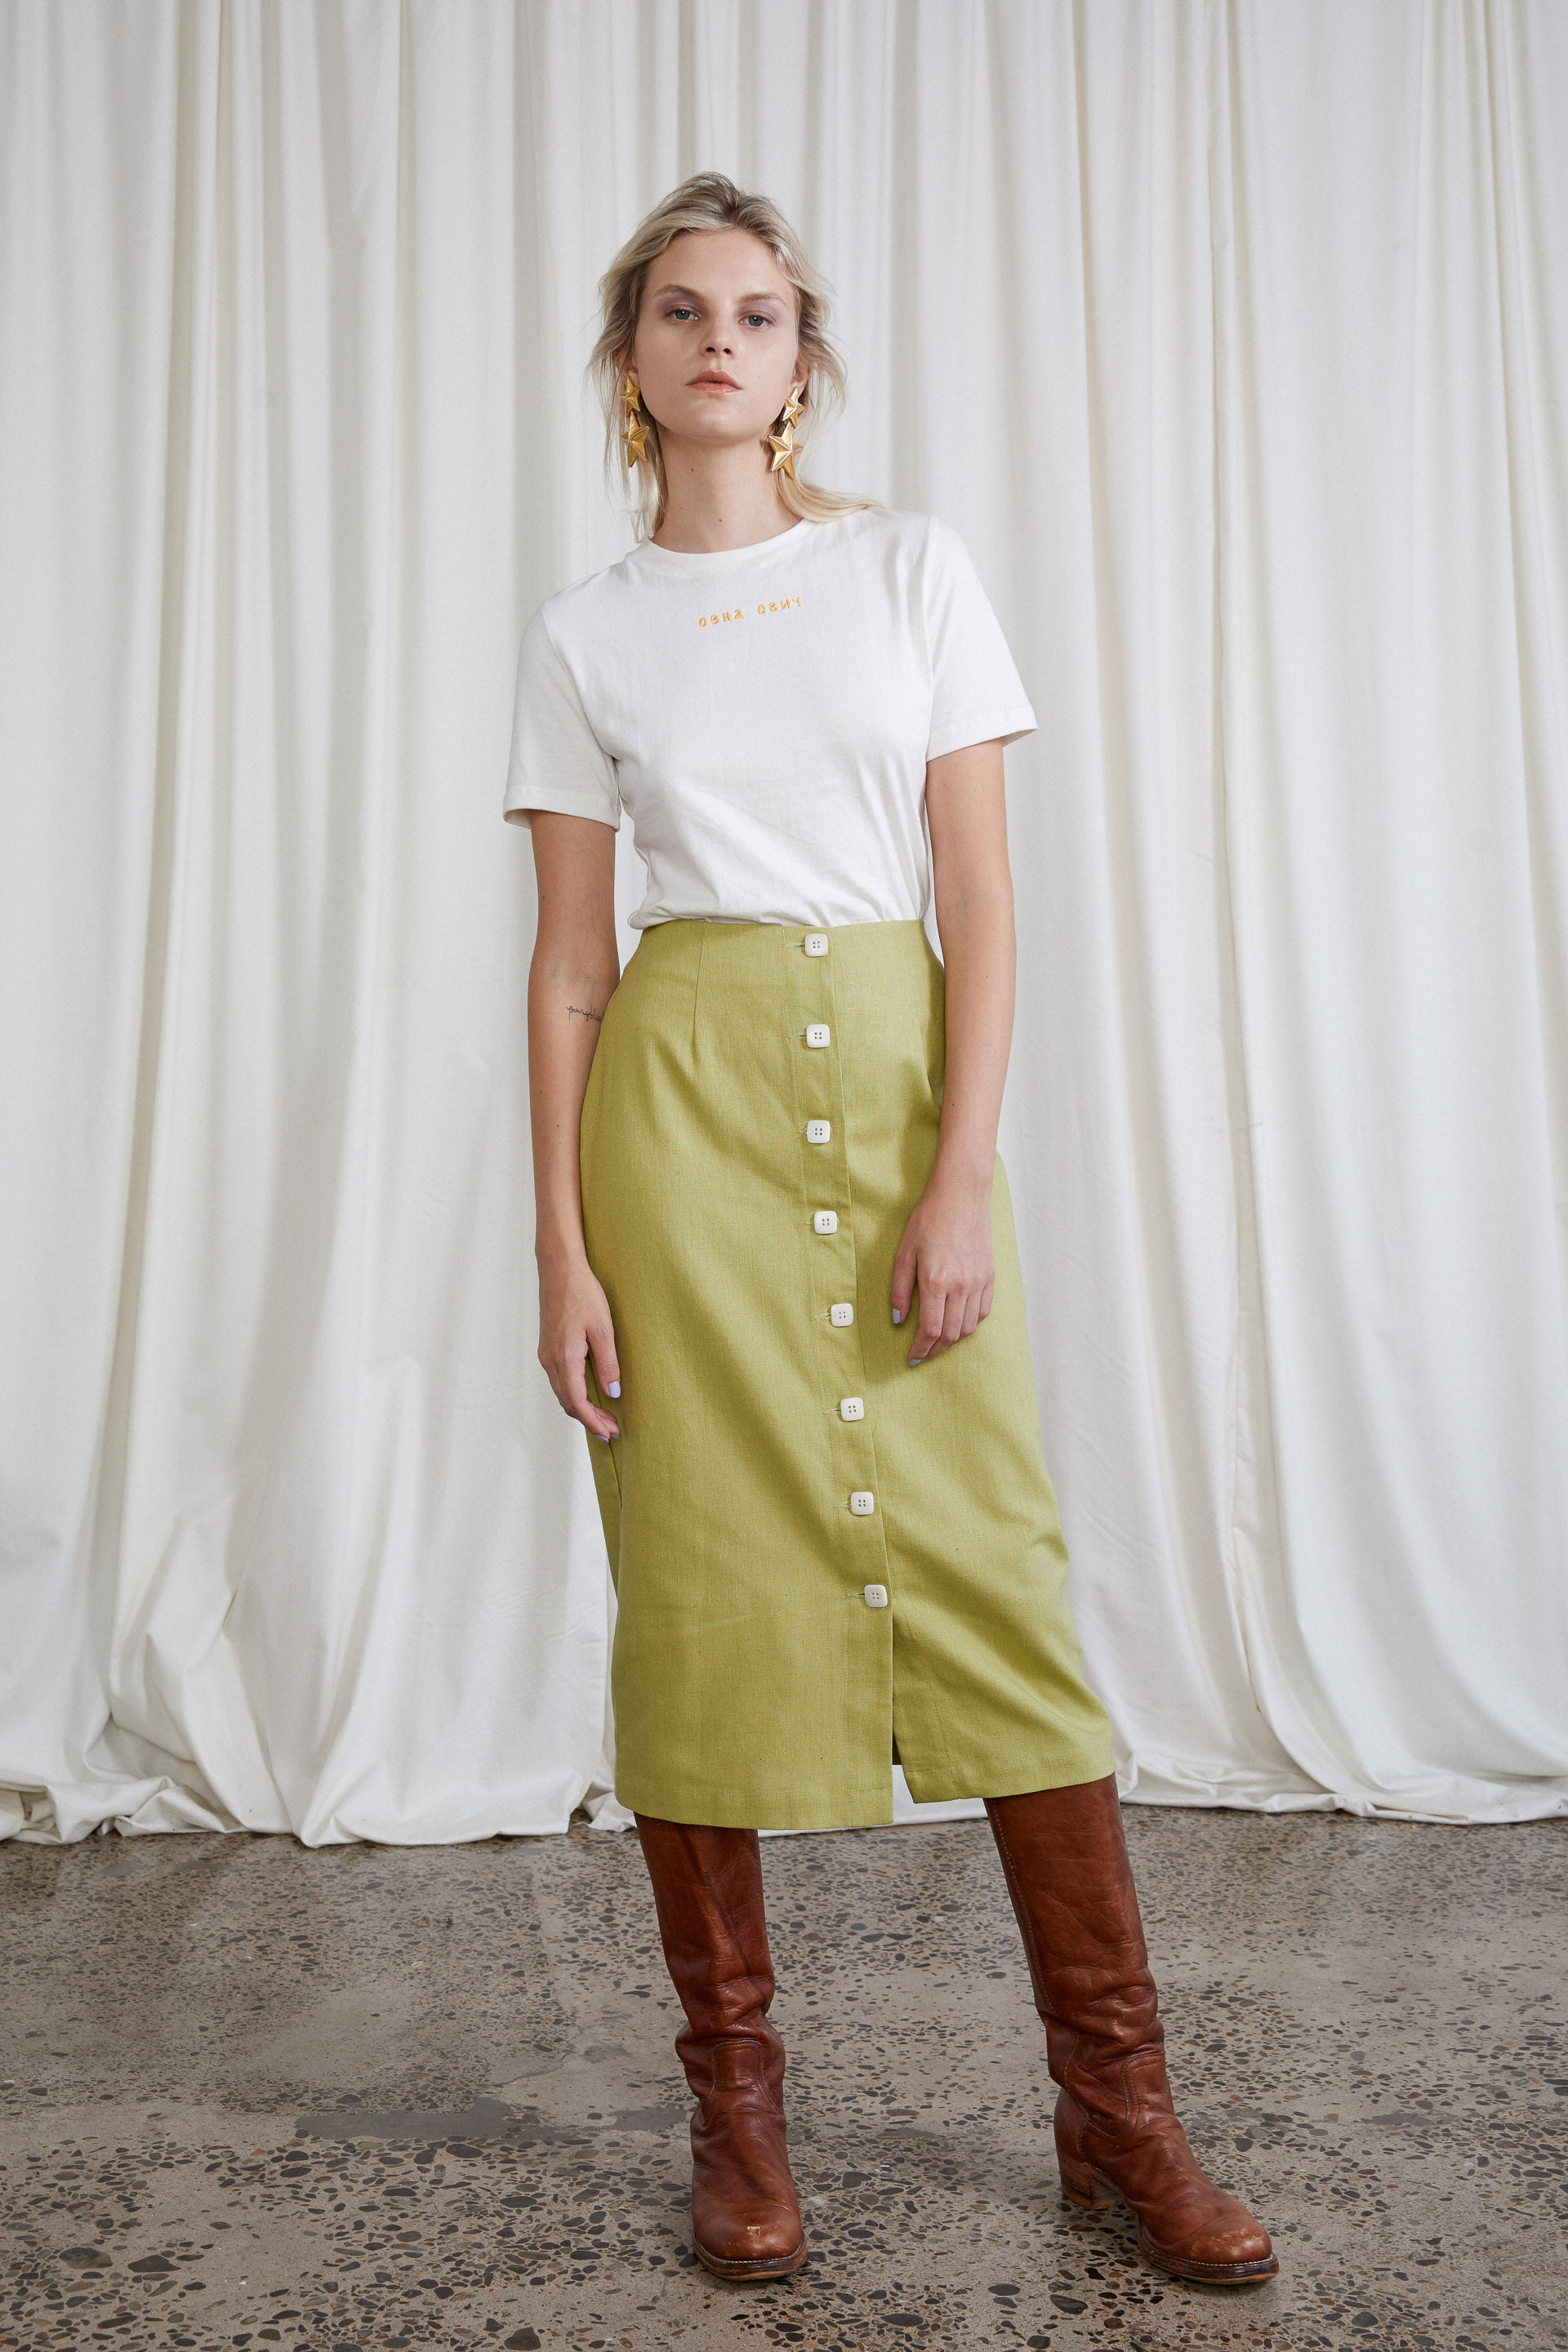 Saskia Skirt - Avocado Hemp Organic Cotton